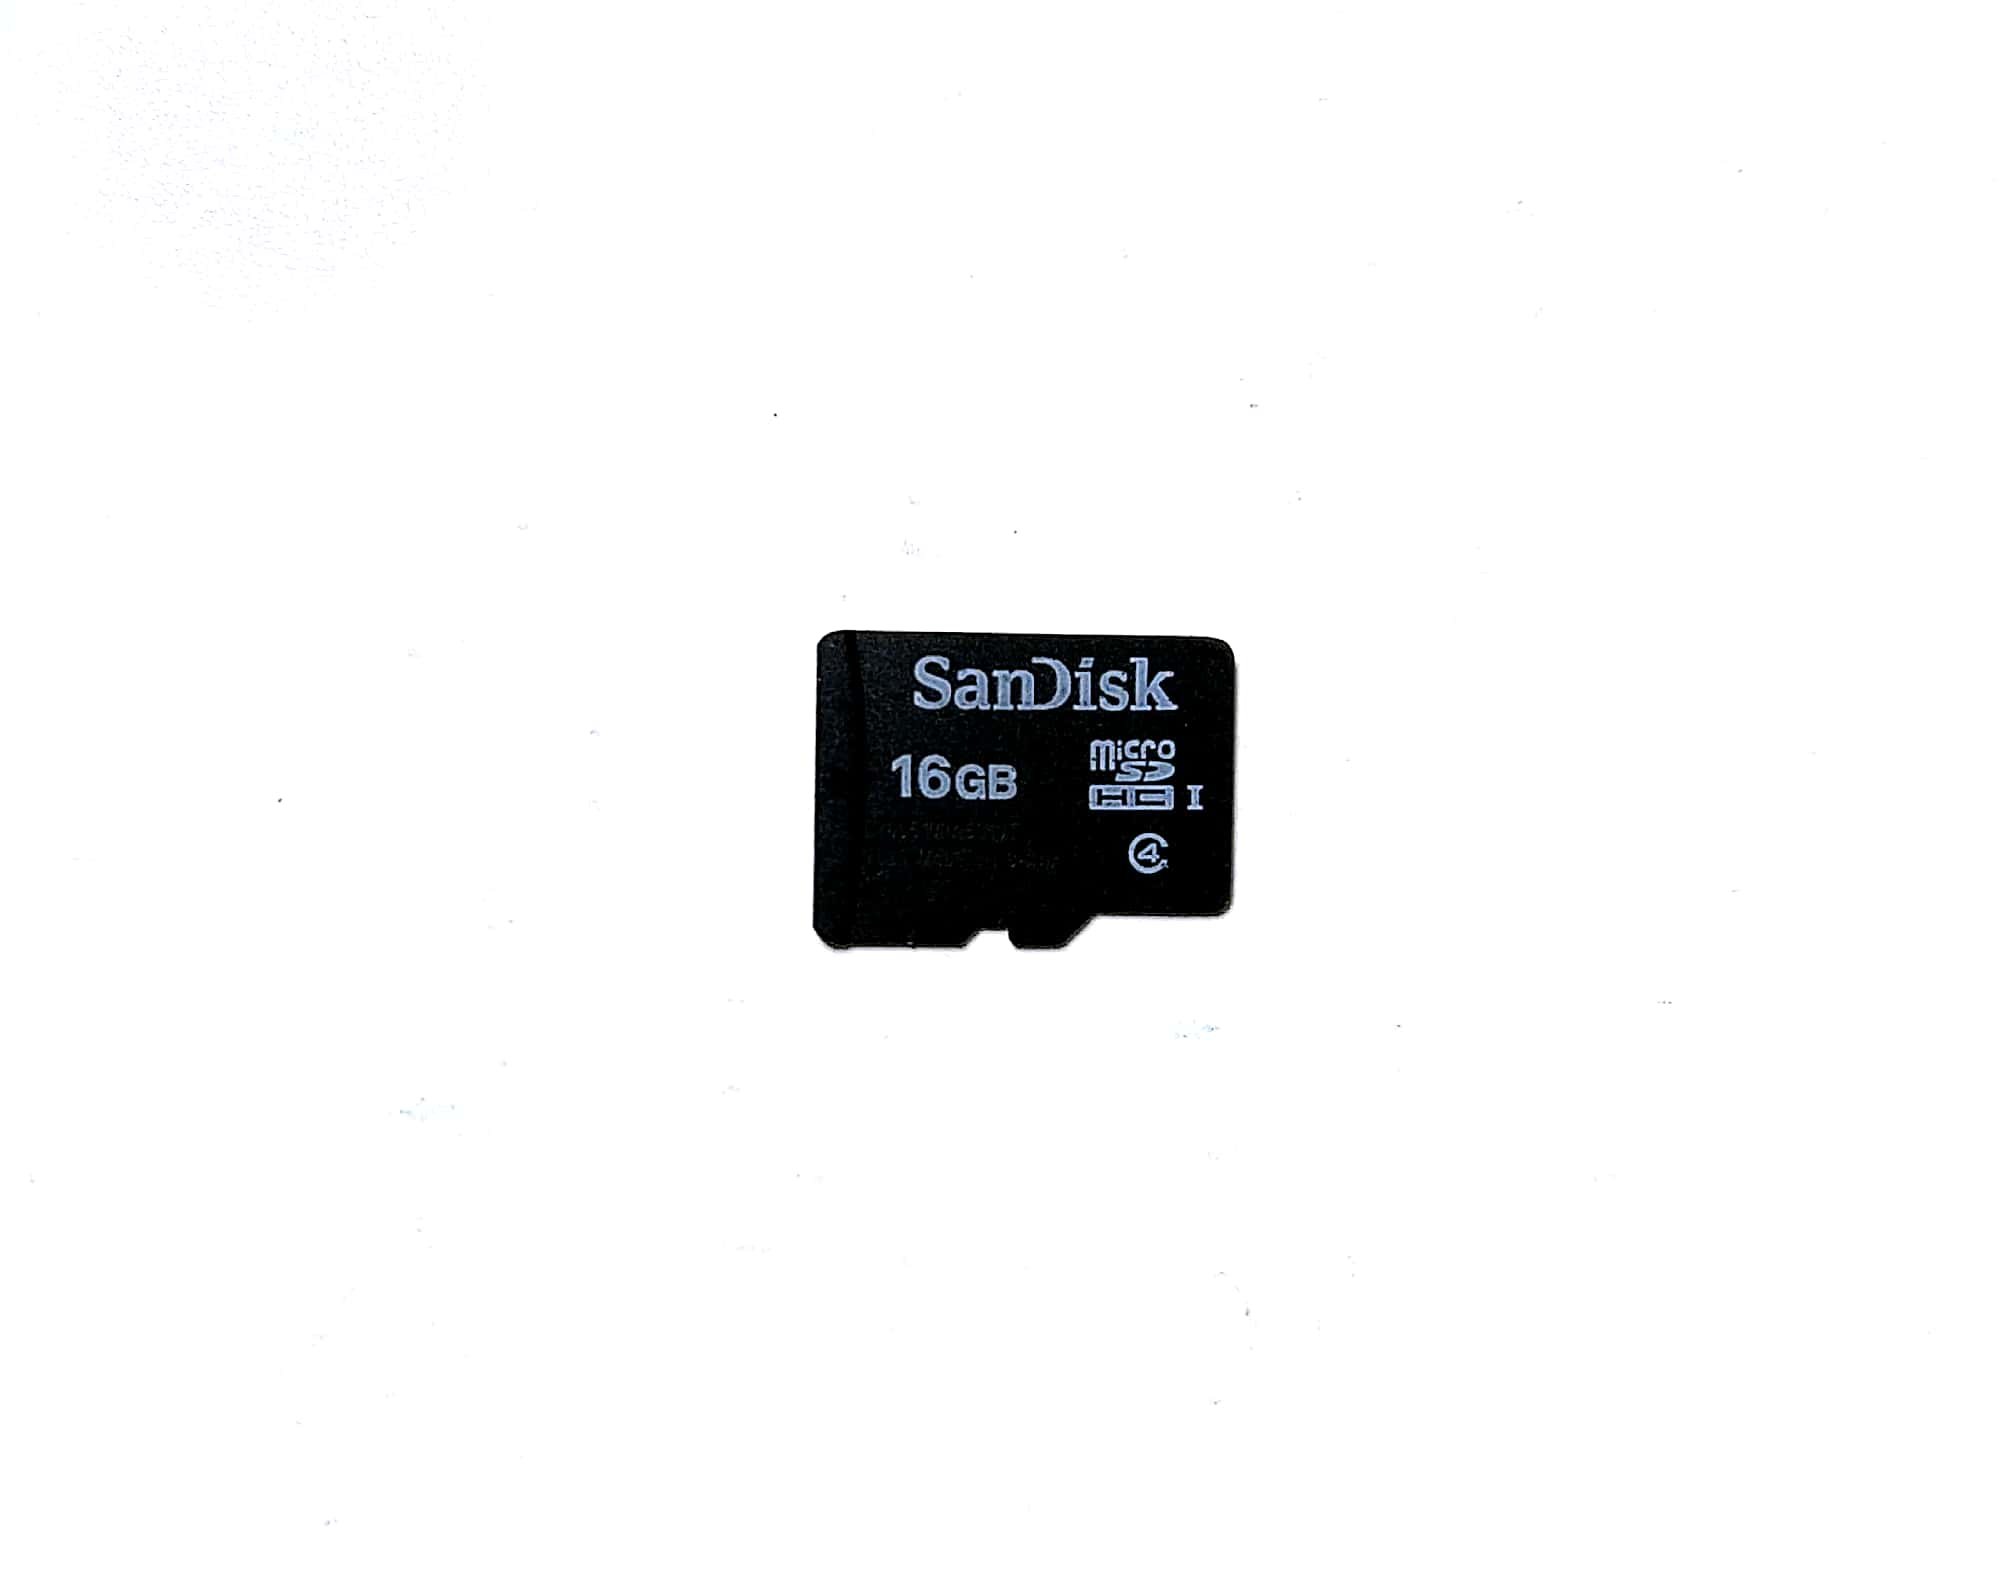 Our sandisk class 4 16GB memory card